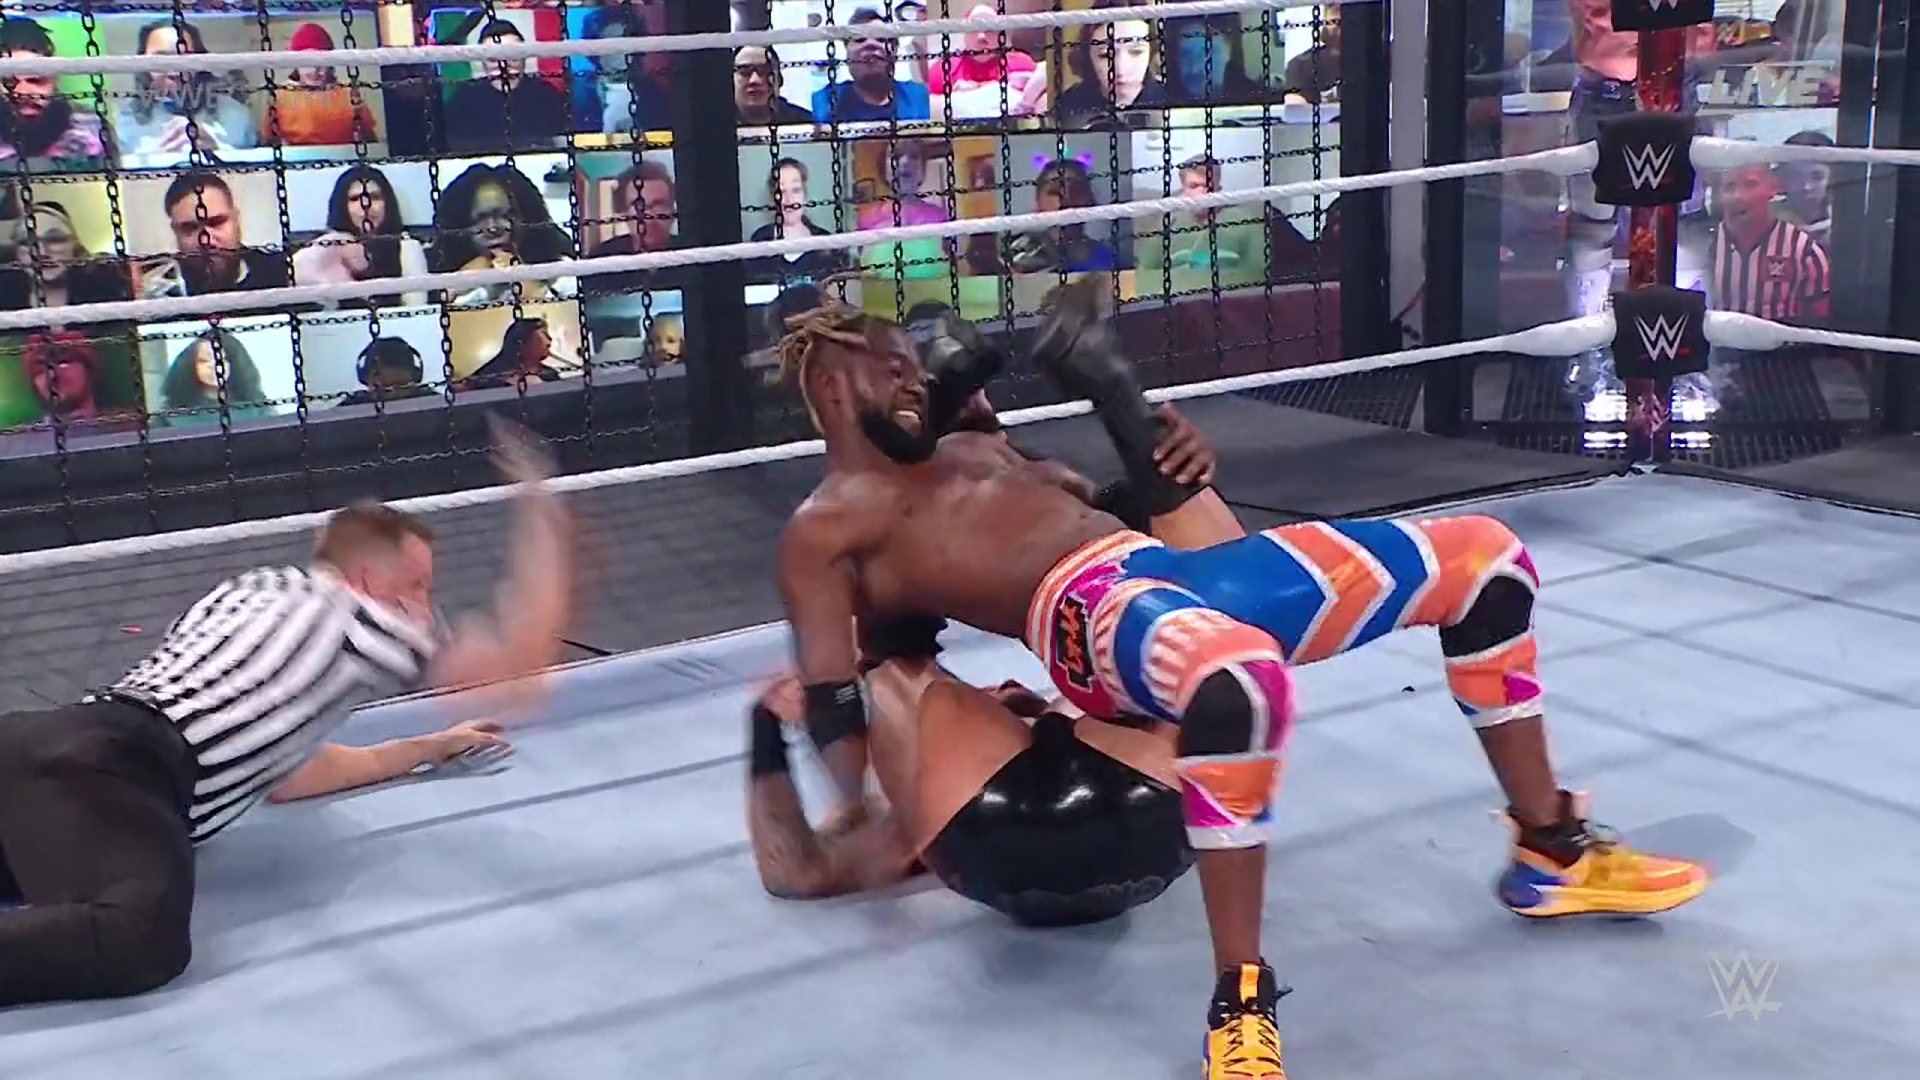 Kofi Kingston eliminates Randy Orton - Elimination Chamber 2021